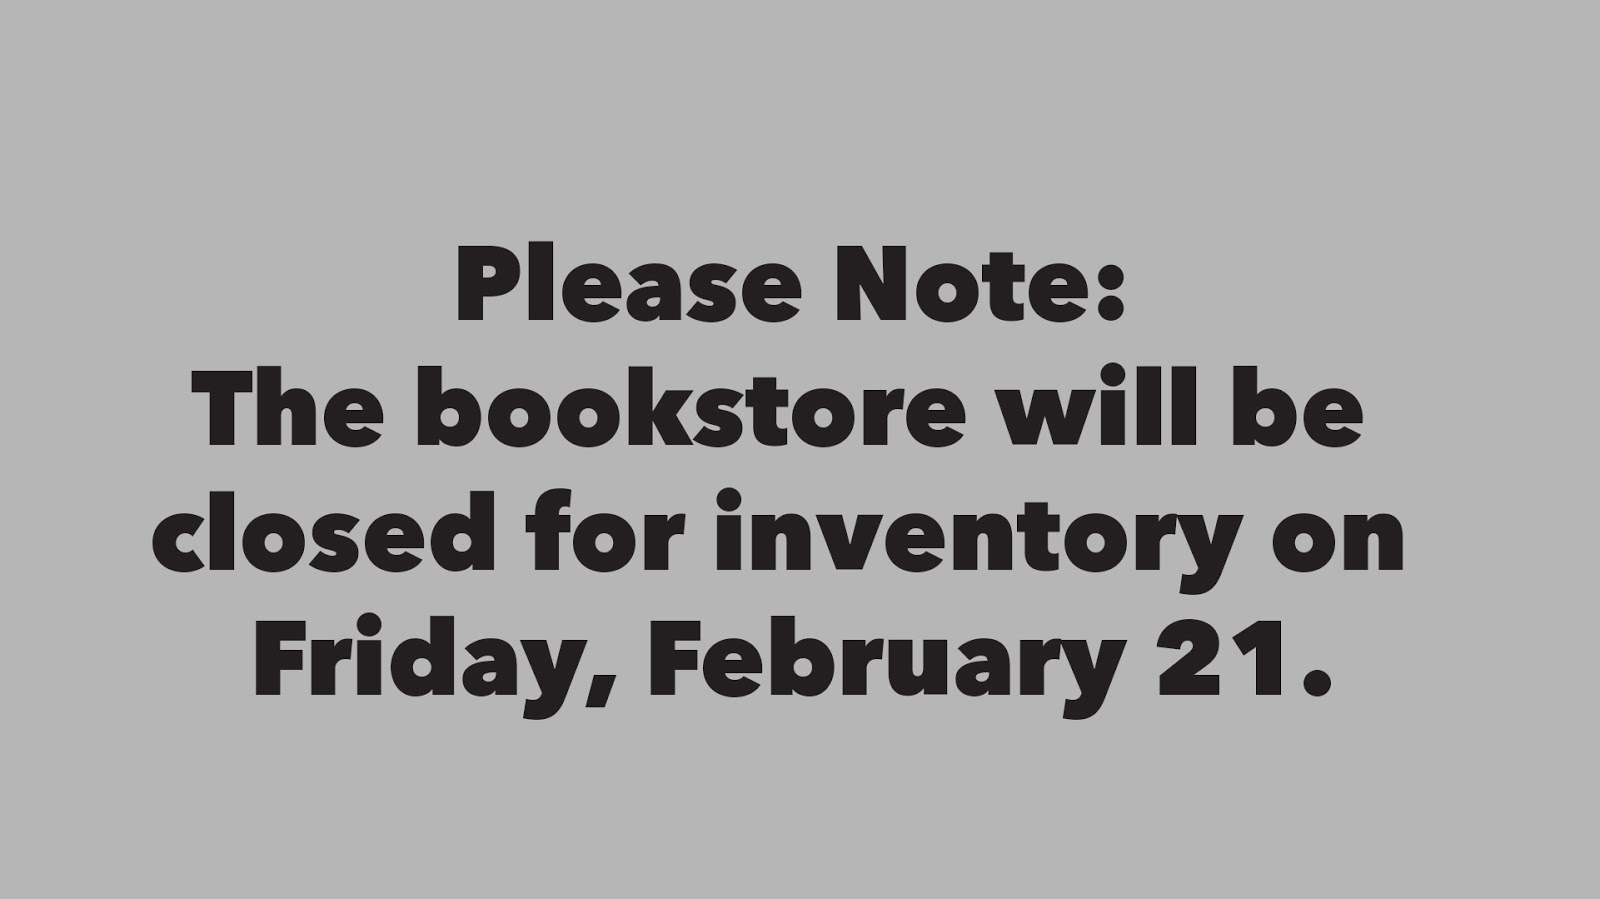 Bookstore closed for inventory on February 21, 2020